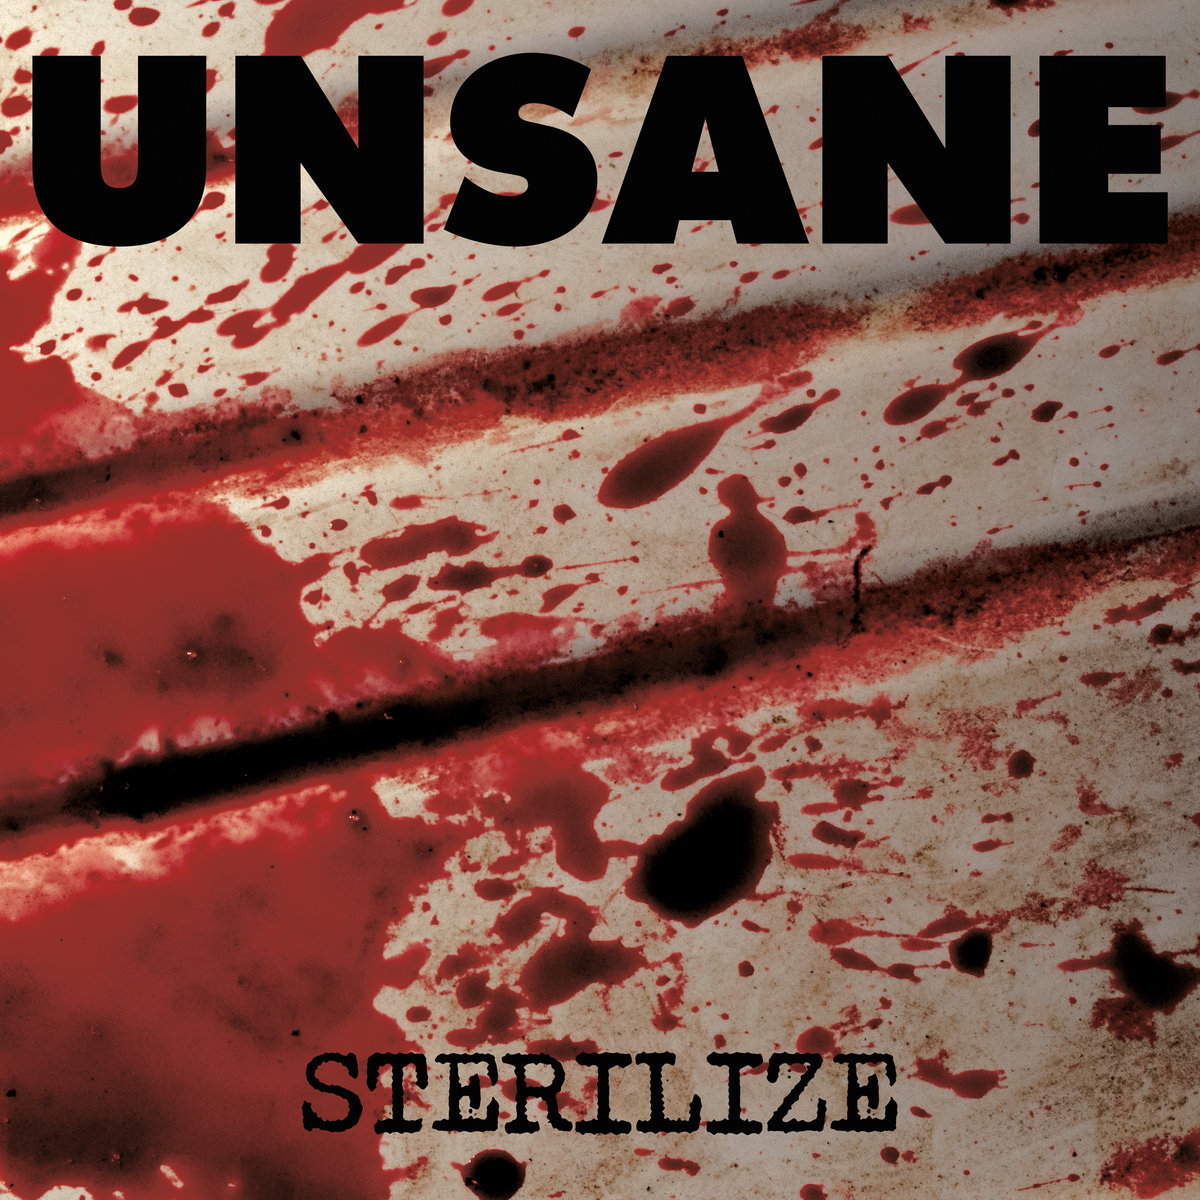 02. Unsane - Sterilize - Unsane's latest addition to their unique noise-fueled approach to metal is best chronicled by vocalist Chris Spencer on the opening song of Sterilize (in his distinct, painful yows):